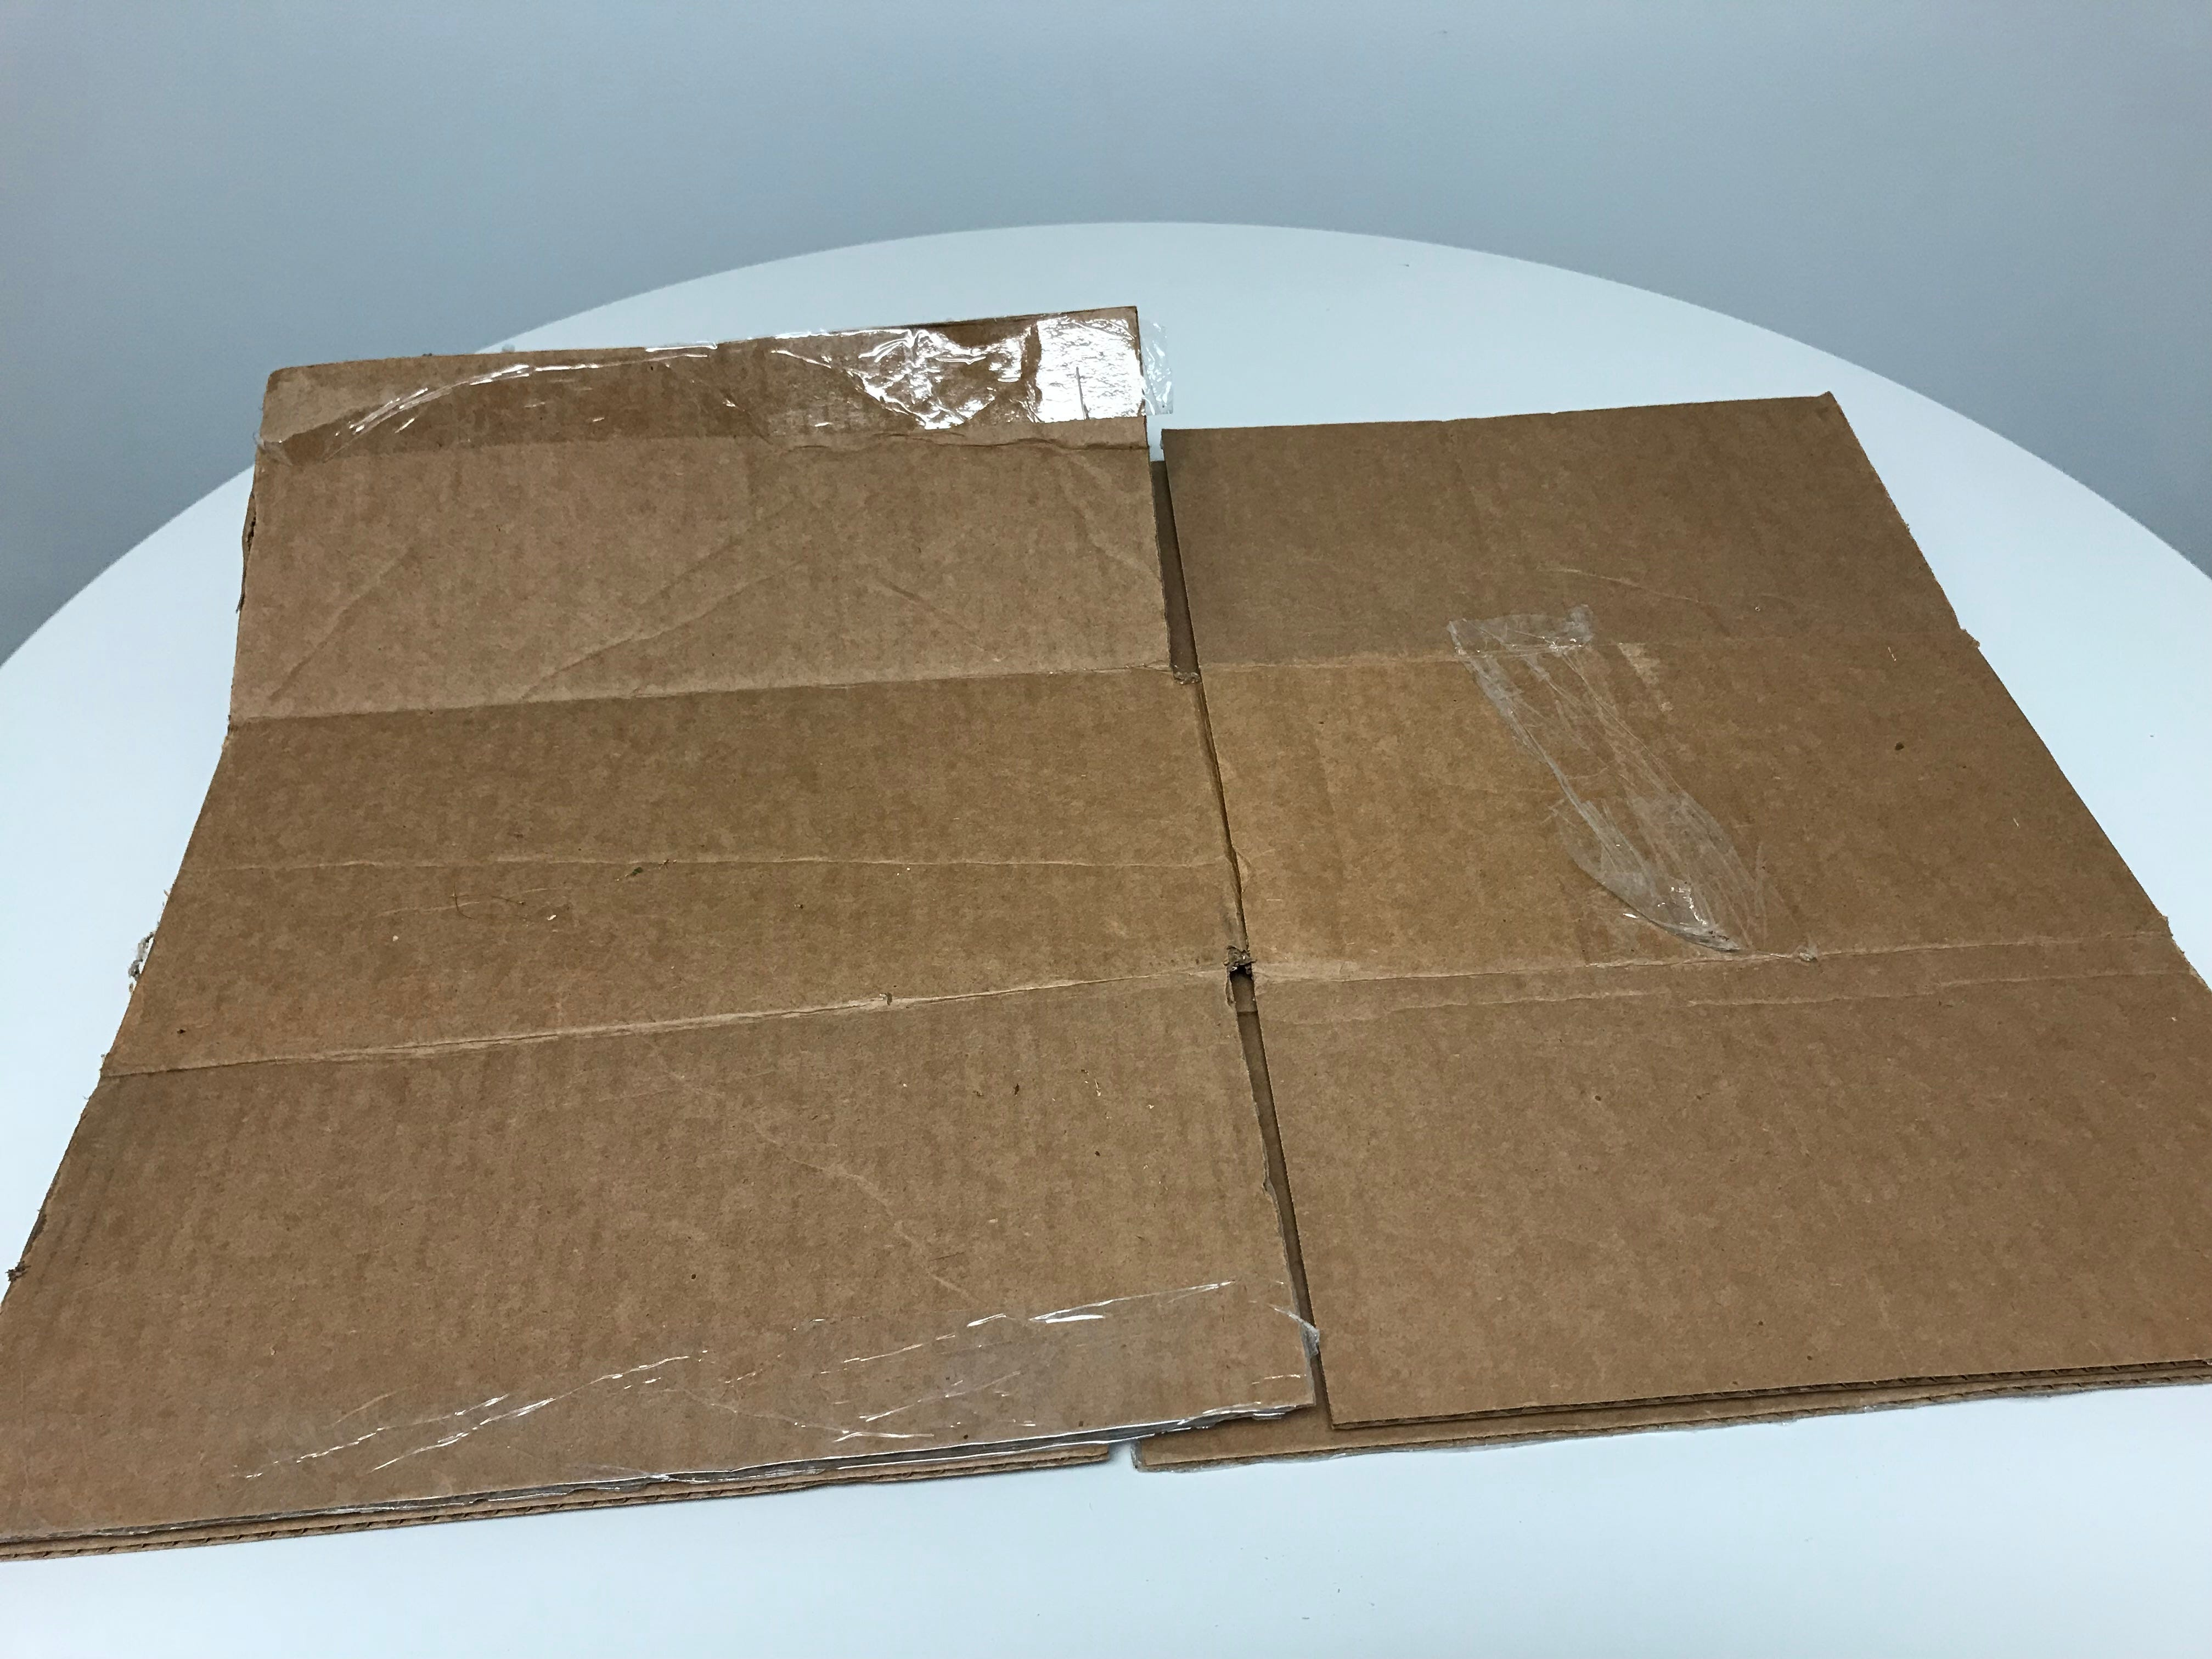 An example of the proper way for cardboard boxes to be prepared for curbside recycling bins.